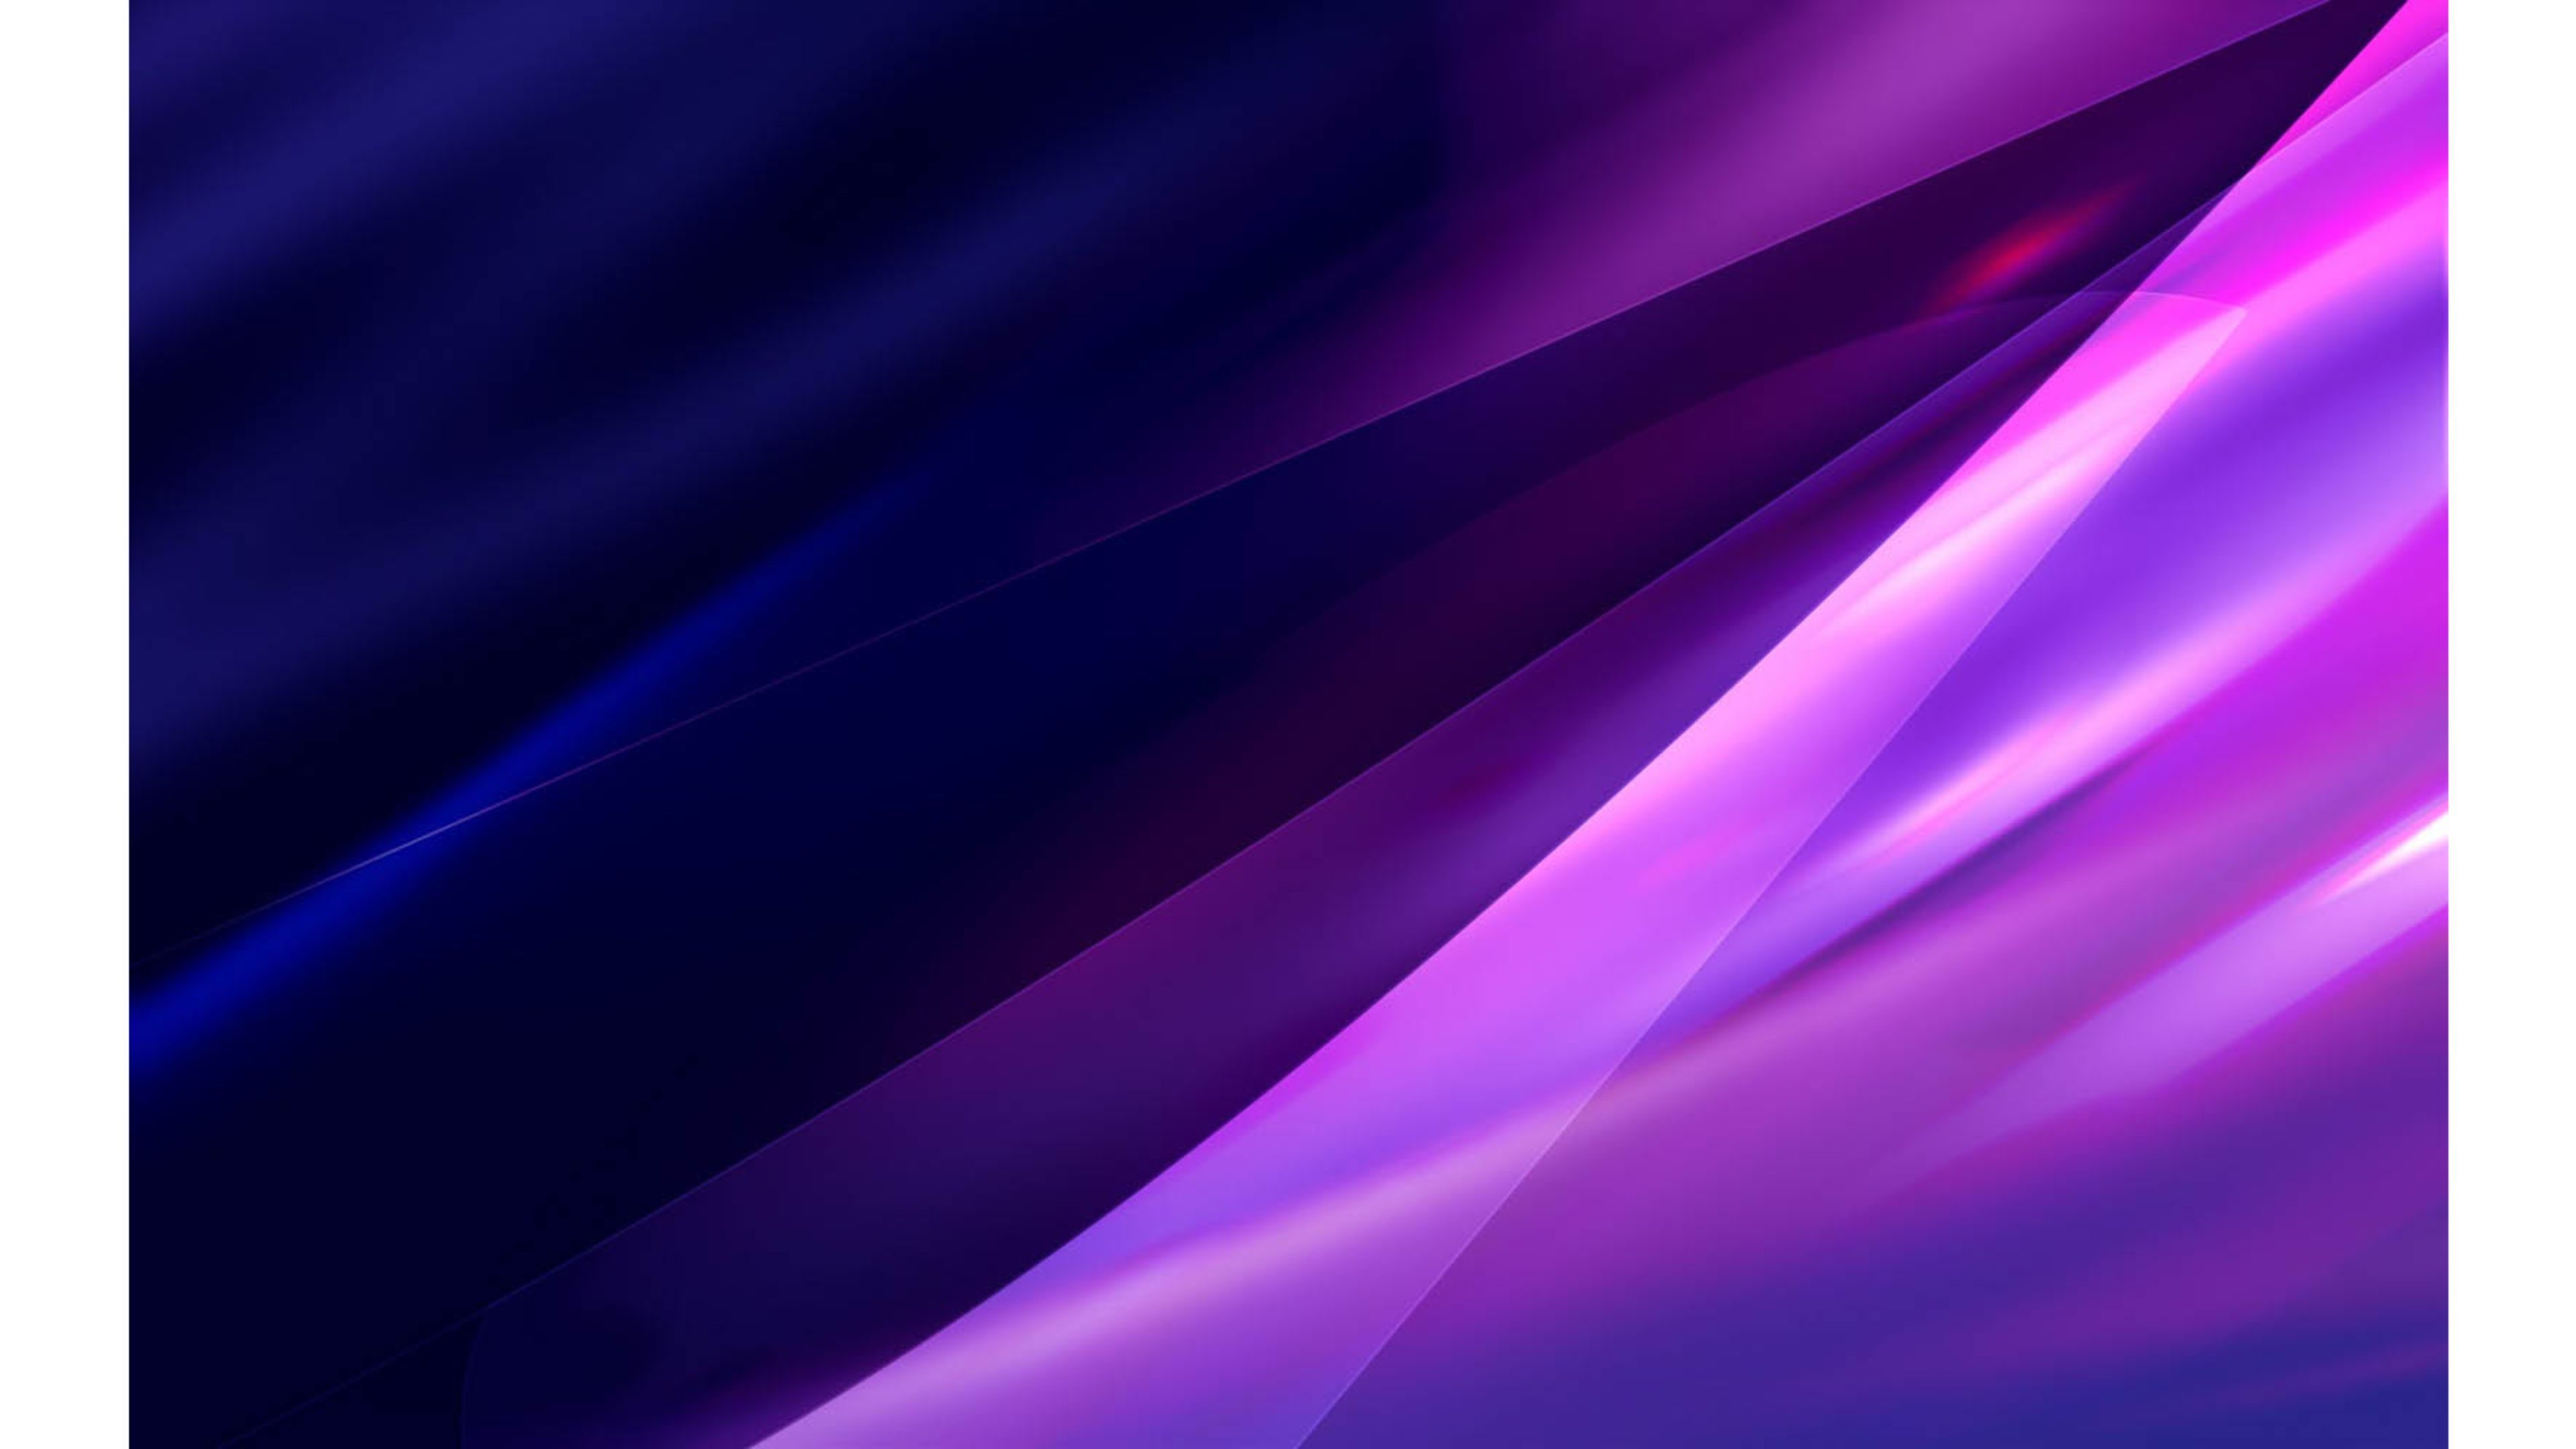 Purple Waves Abstract 4K Wallpaper Free 4K Wallpaper